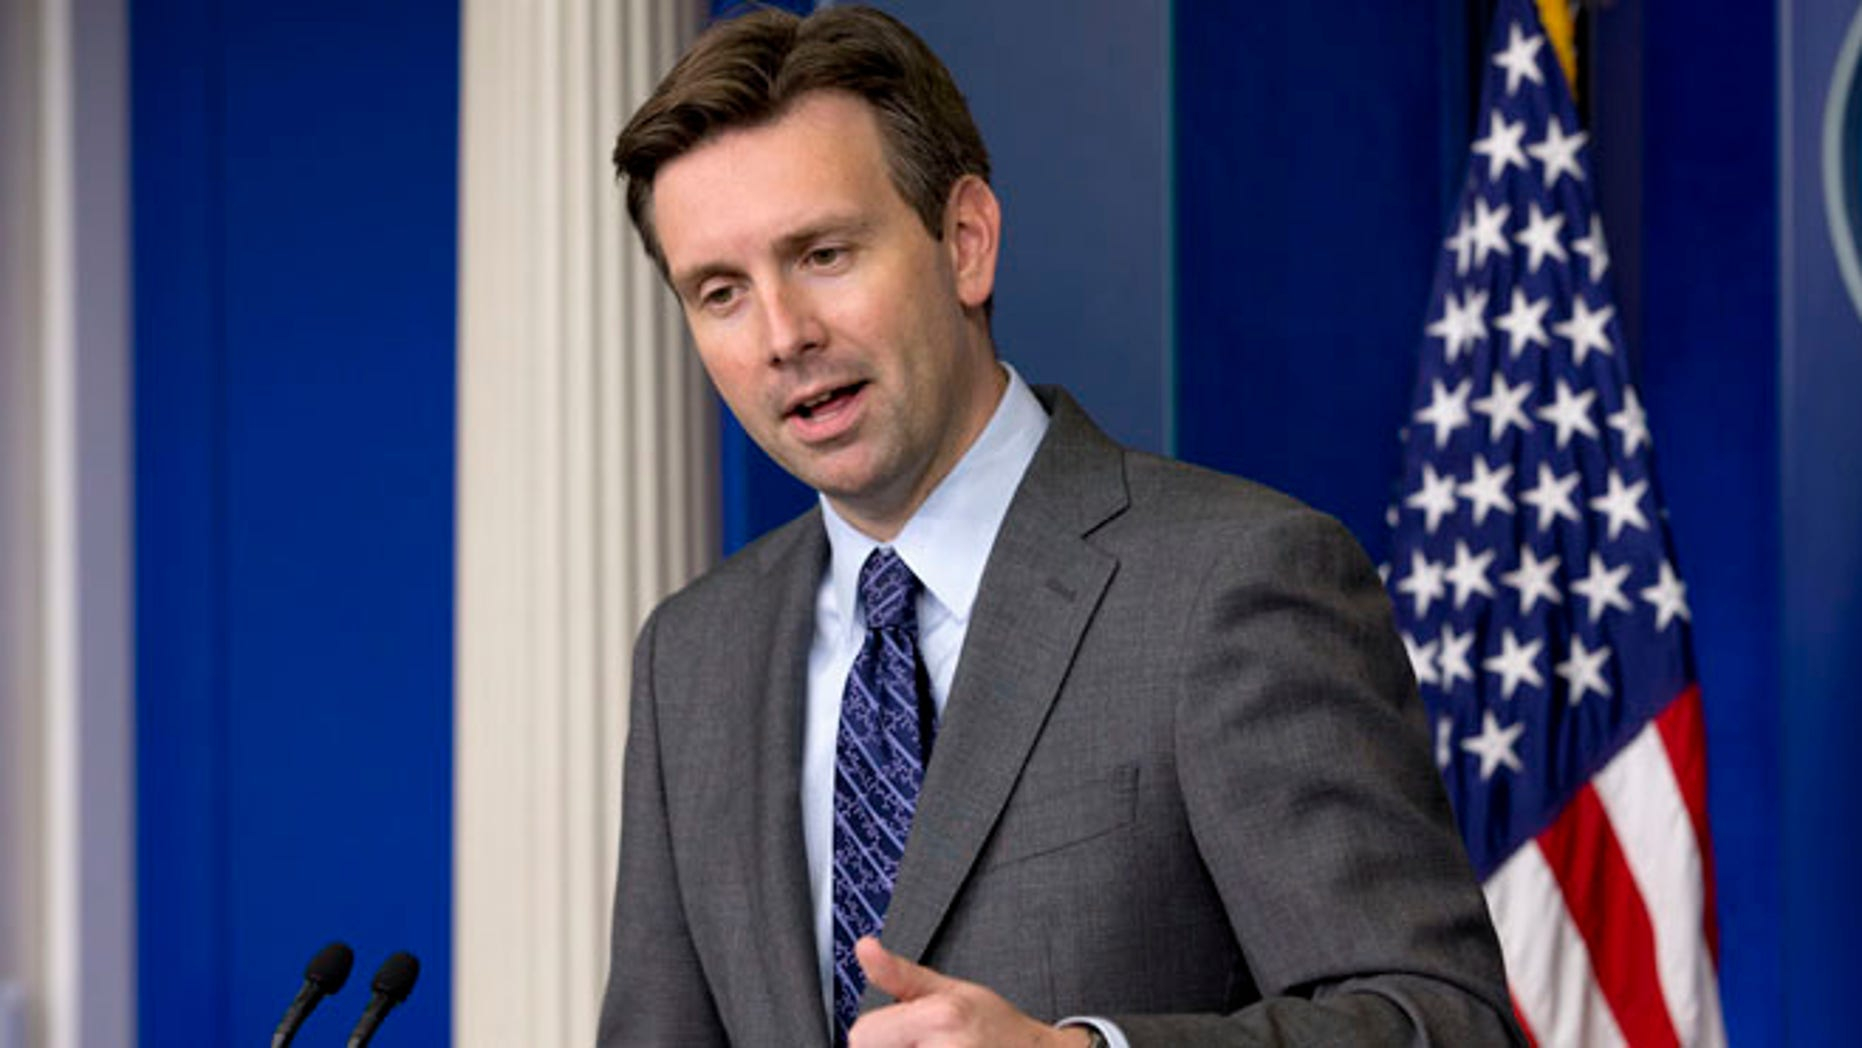 White House press secretary Josh Earnest speaks during his daily news briefing at the White House in Washington, Tuesday, July 15, 2014.